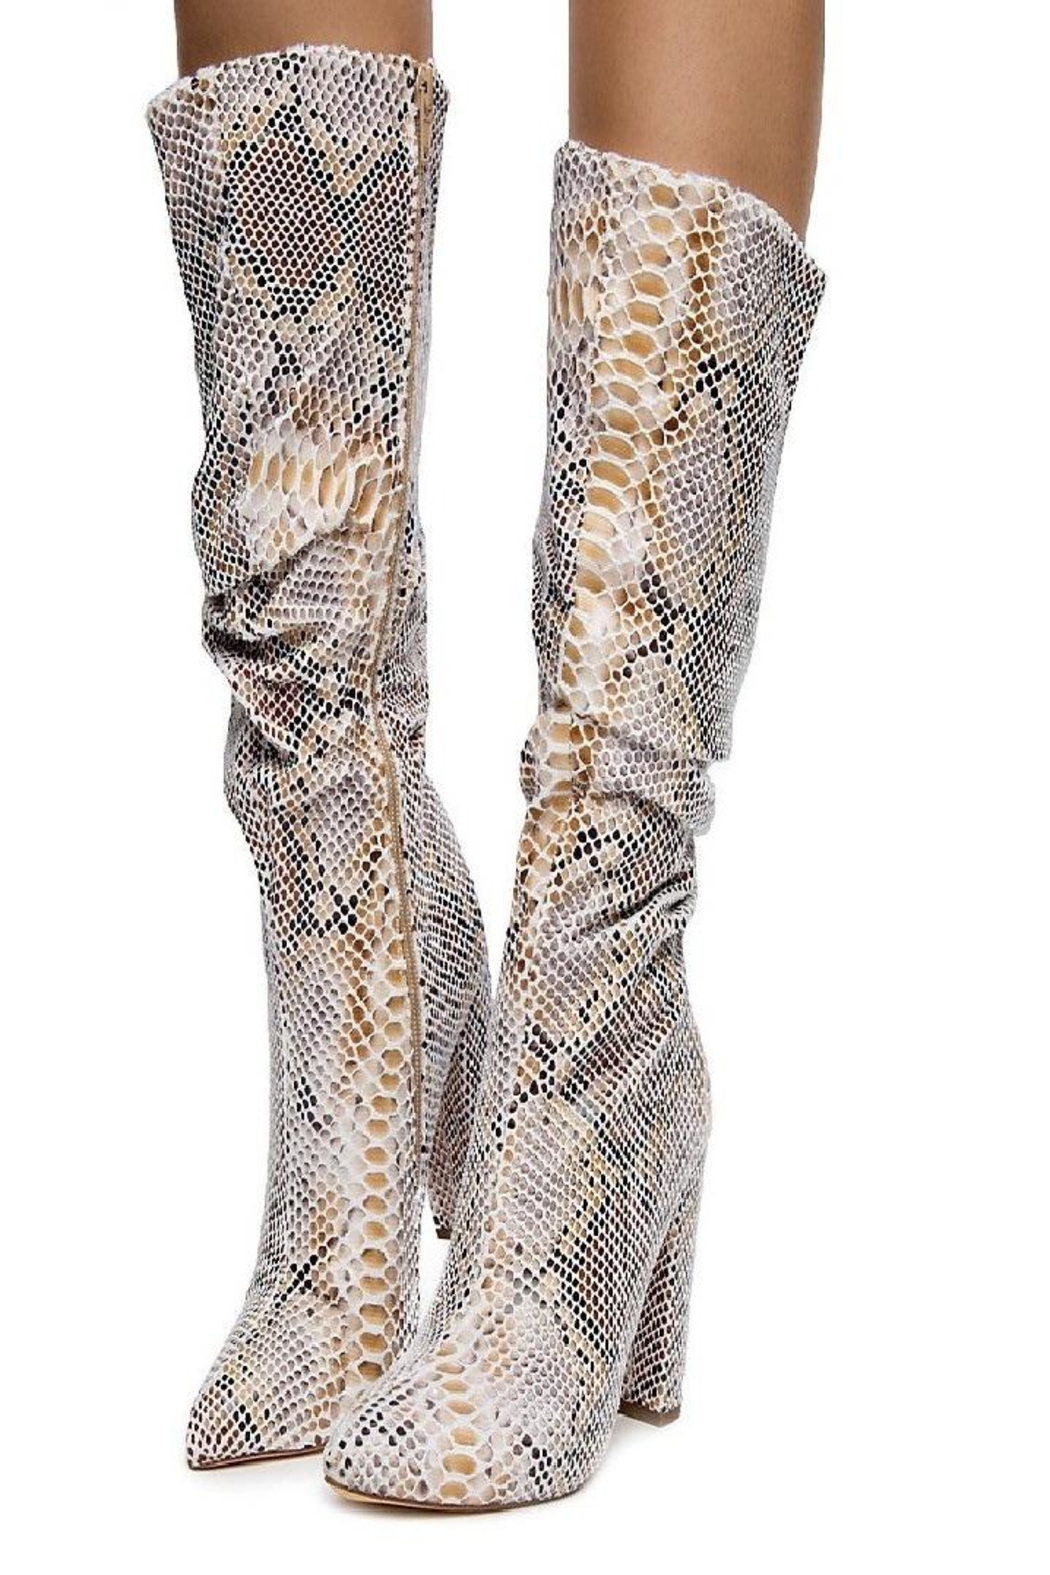 liliana Liliana Hariot-1 Women's Half Calf Boot Beige - Front Cropped Image